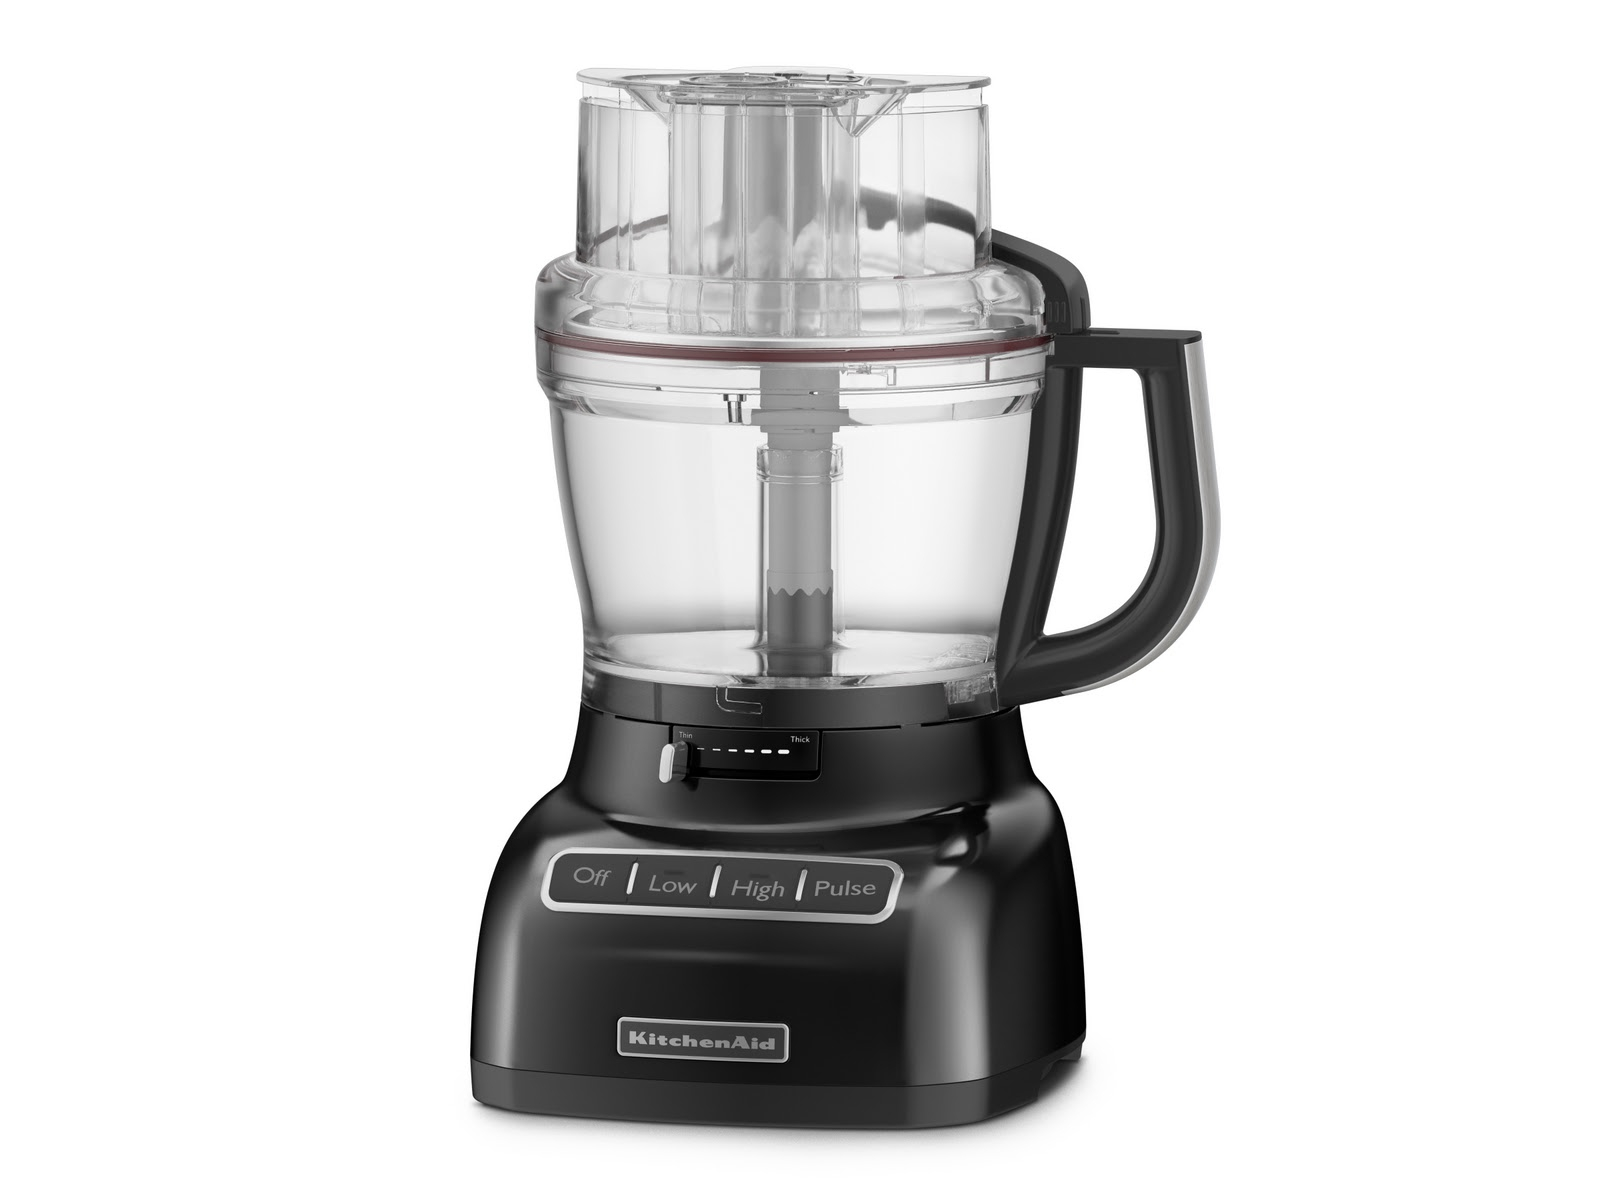 Kitchenaid 13 cup food processor black friday 5k for Kitchenaid food processor